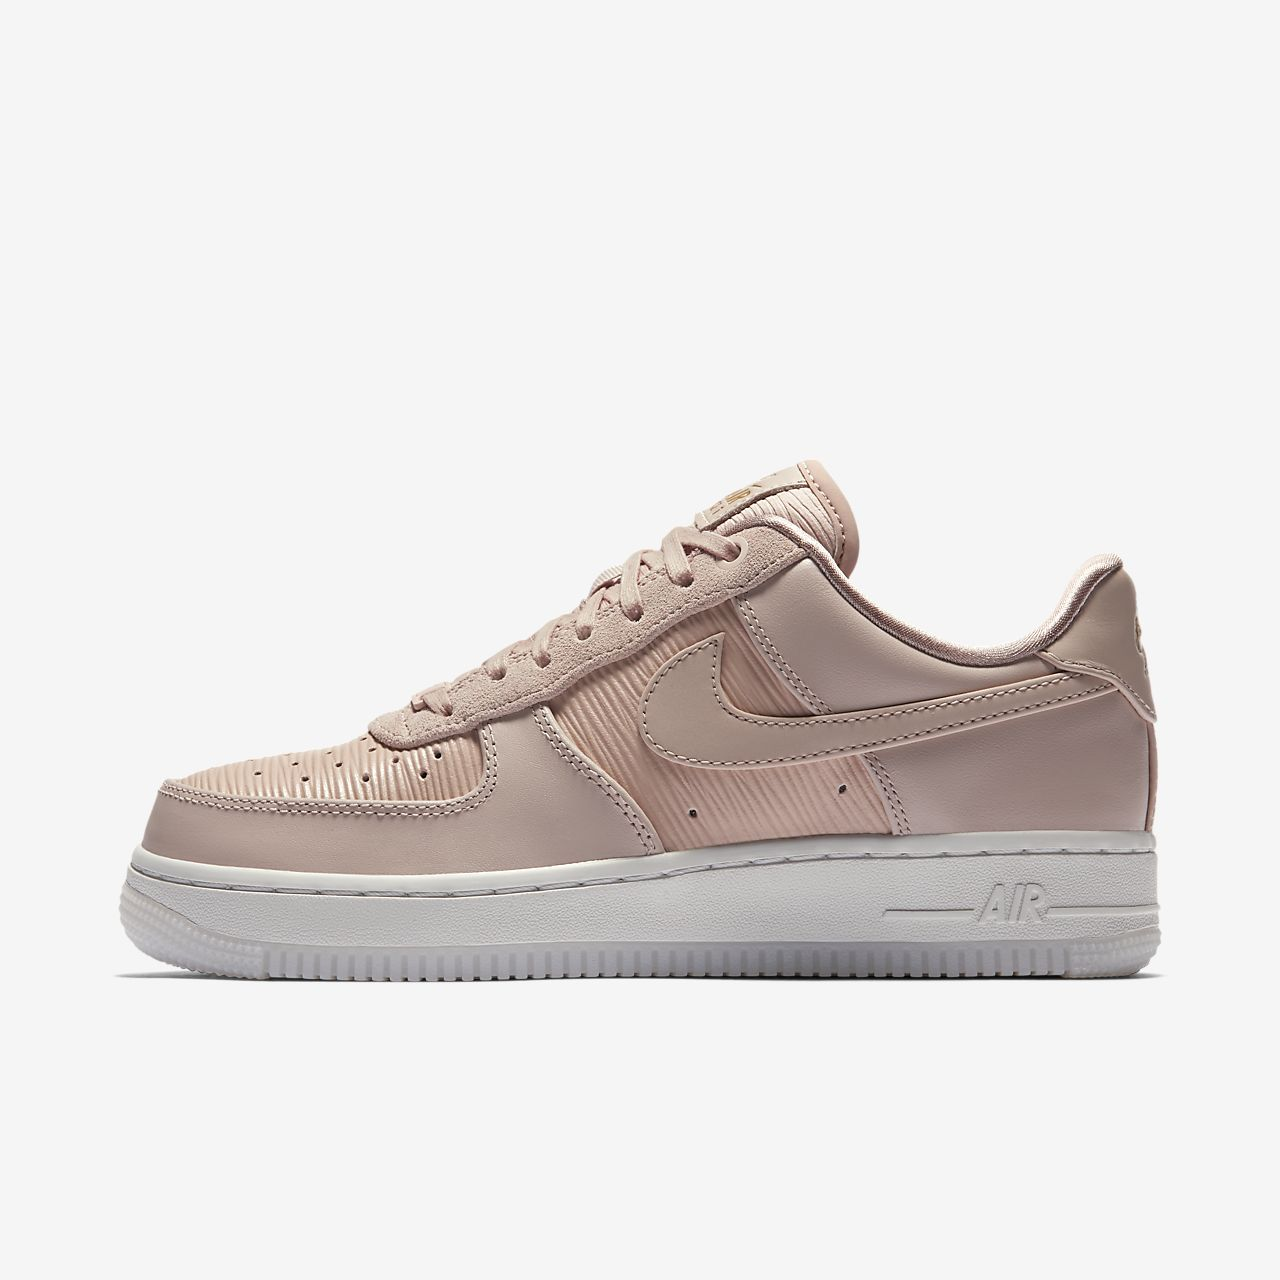 Air Force 1 07 Premium - Chaussures - Bas-tops Et Baskets Nike o8rQxo6k7b